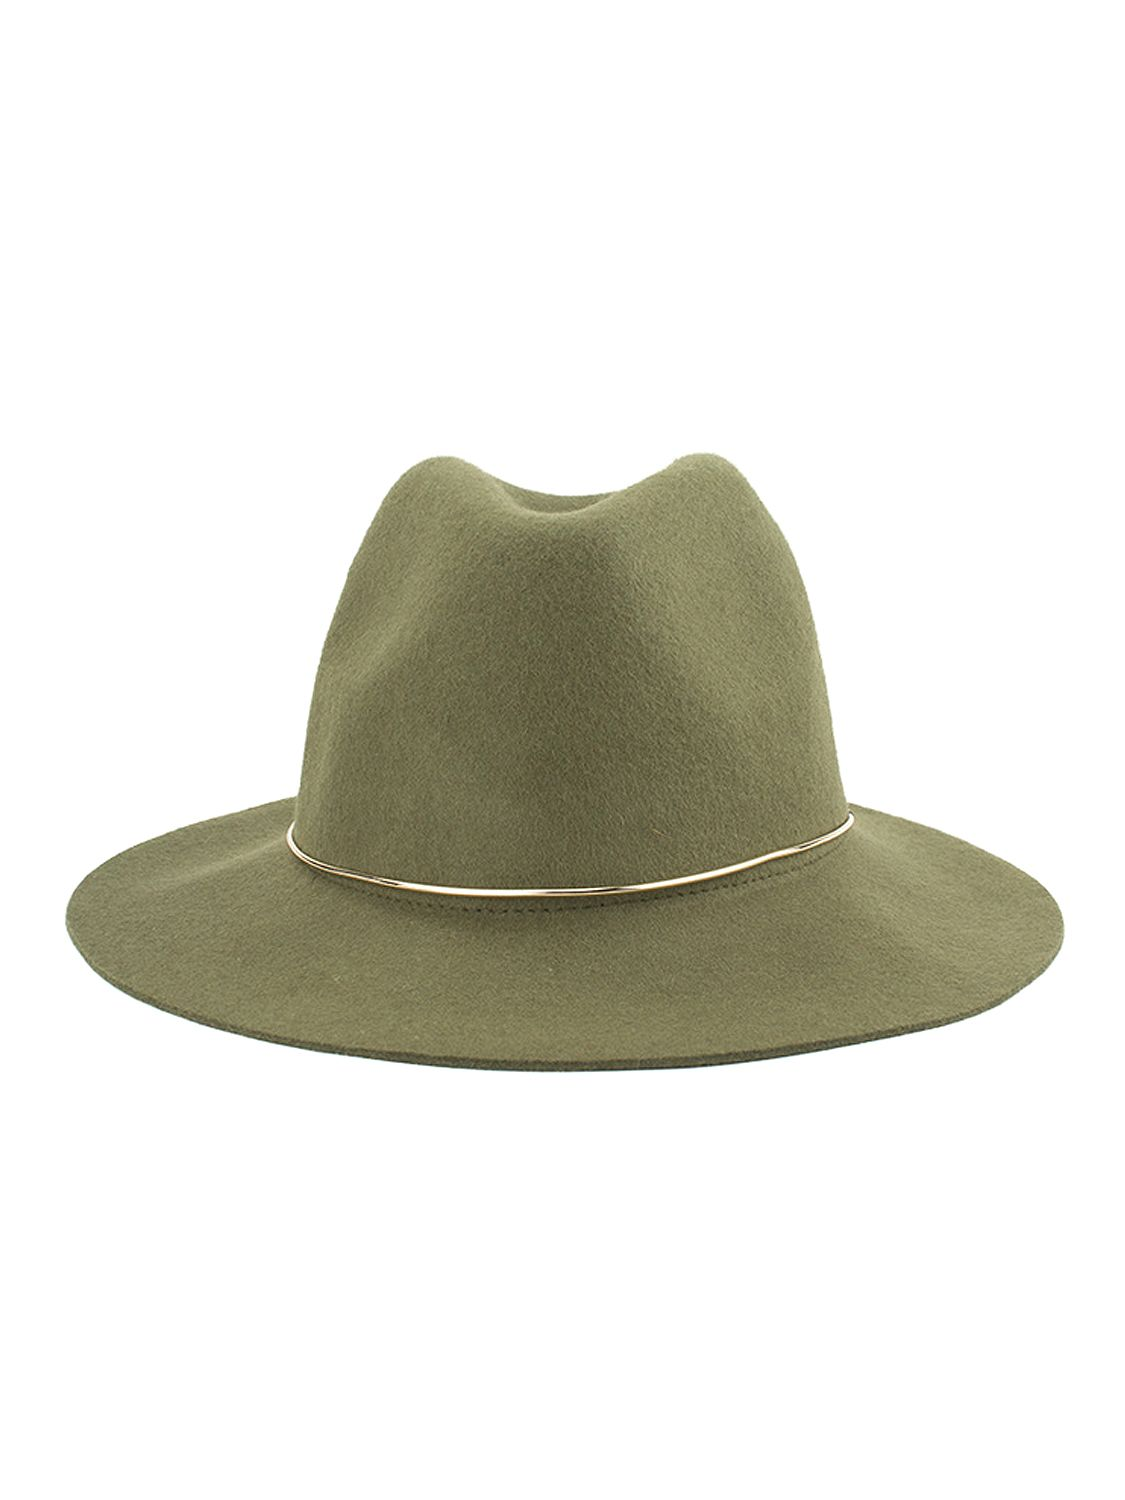 Buy Green Metal Band Embellished Wool Blend Fedora Hat from abaday.com, FREE shipping Worldwide - Fashion Clothing, Latest Street Fashion At Abaday.com